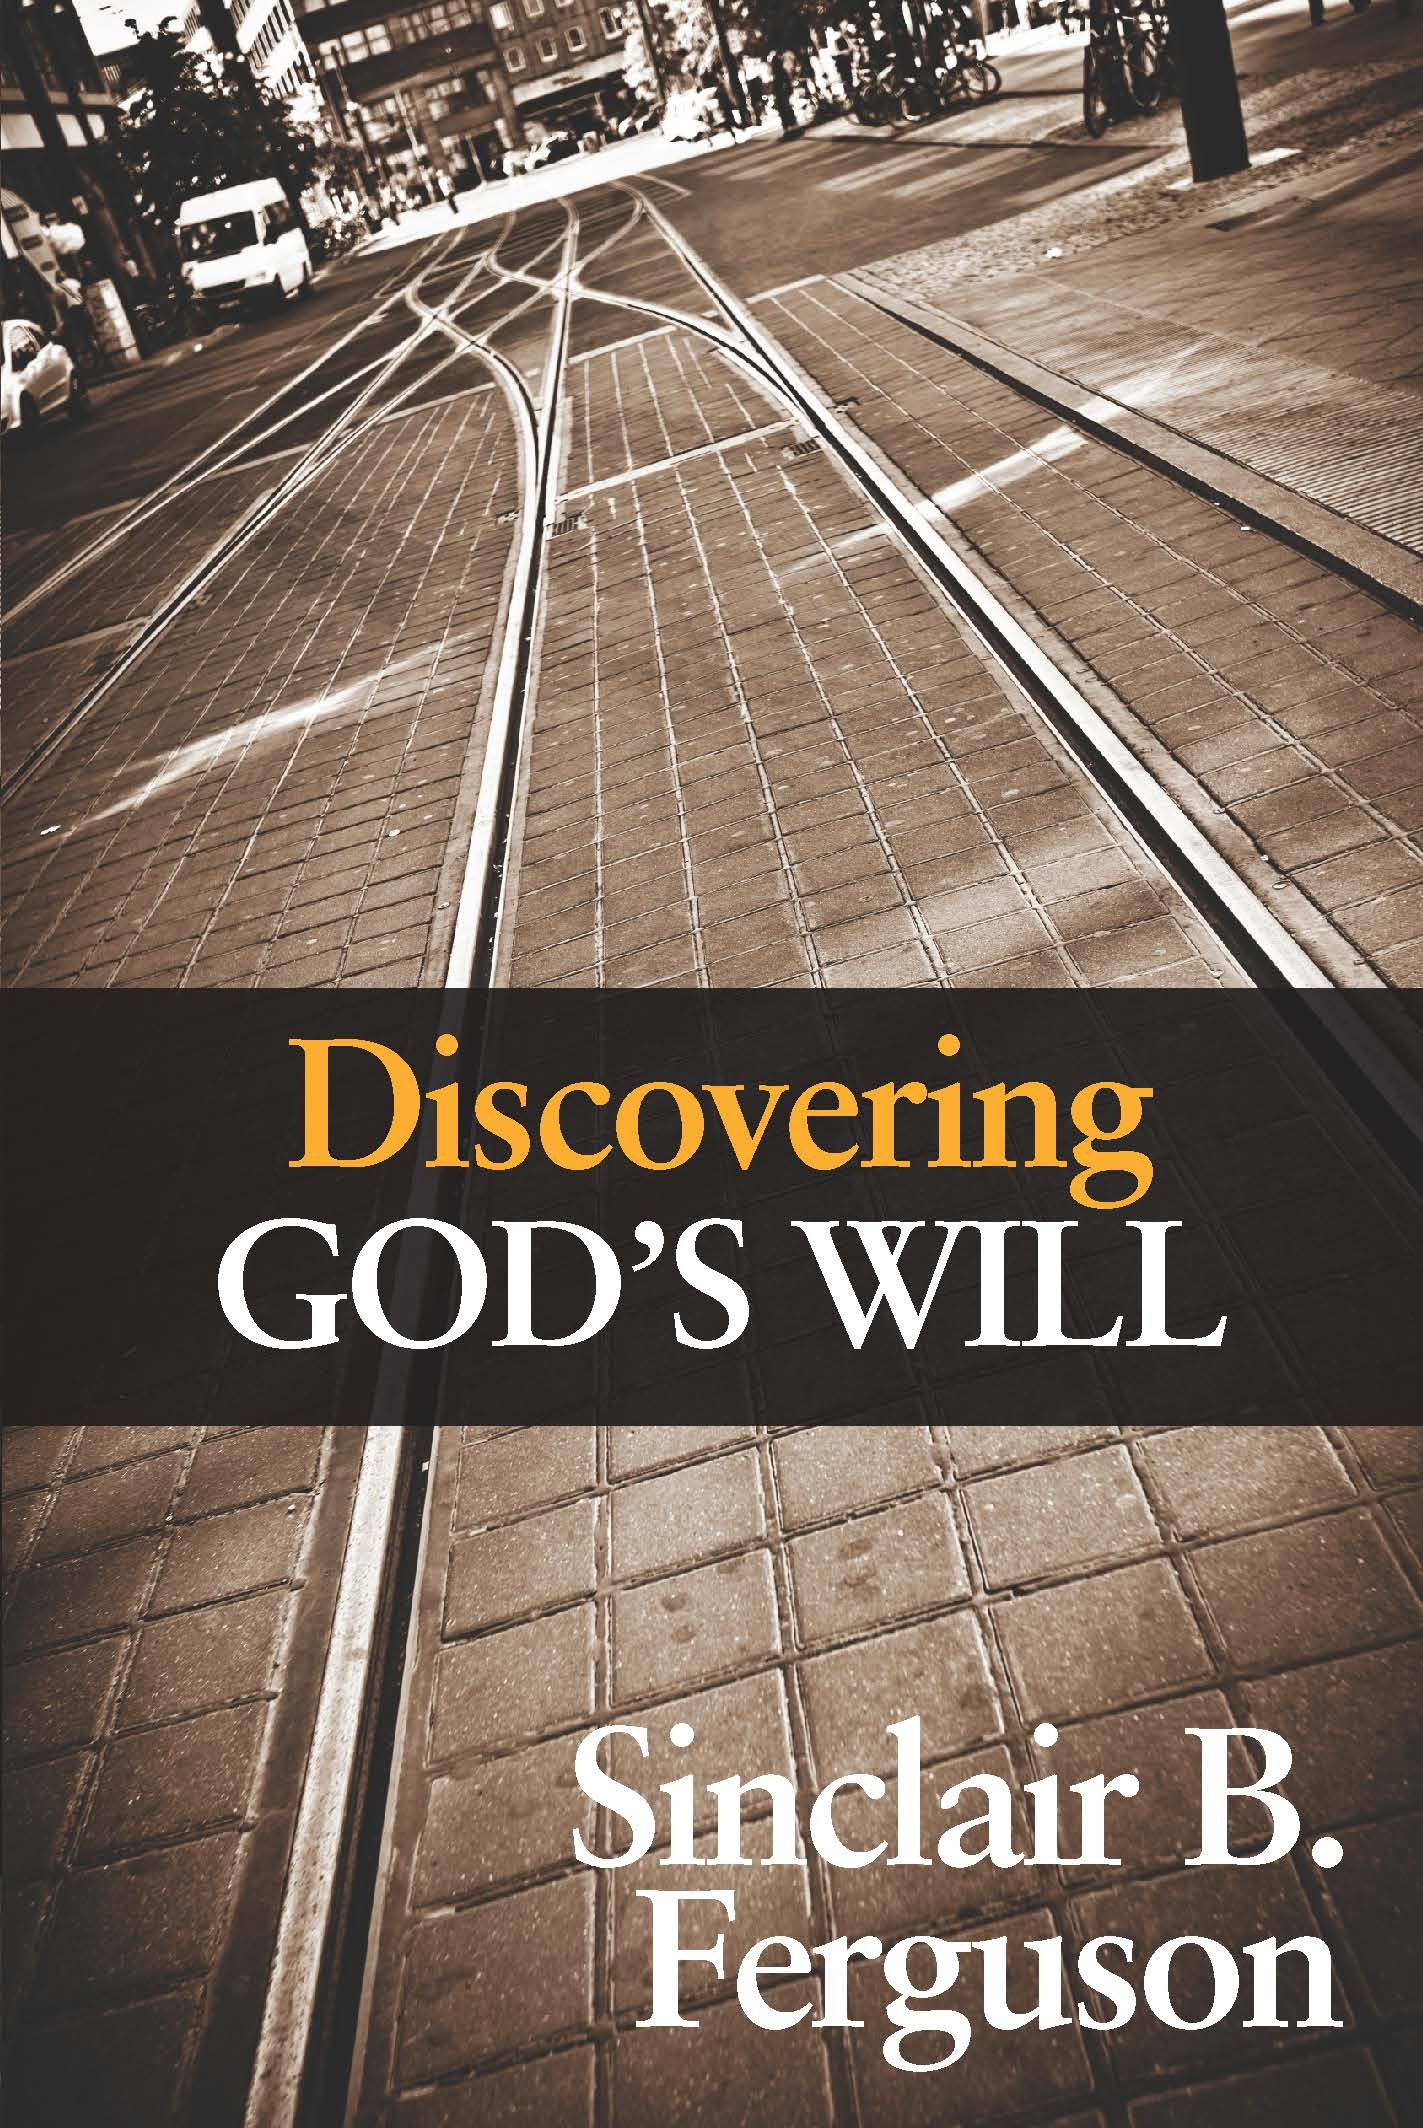 Book Cover For 'Discovering Gods Will'